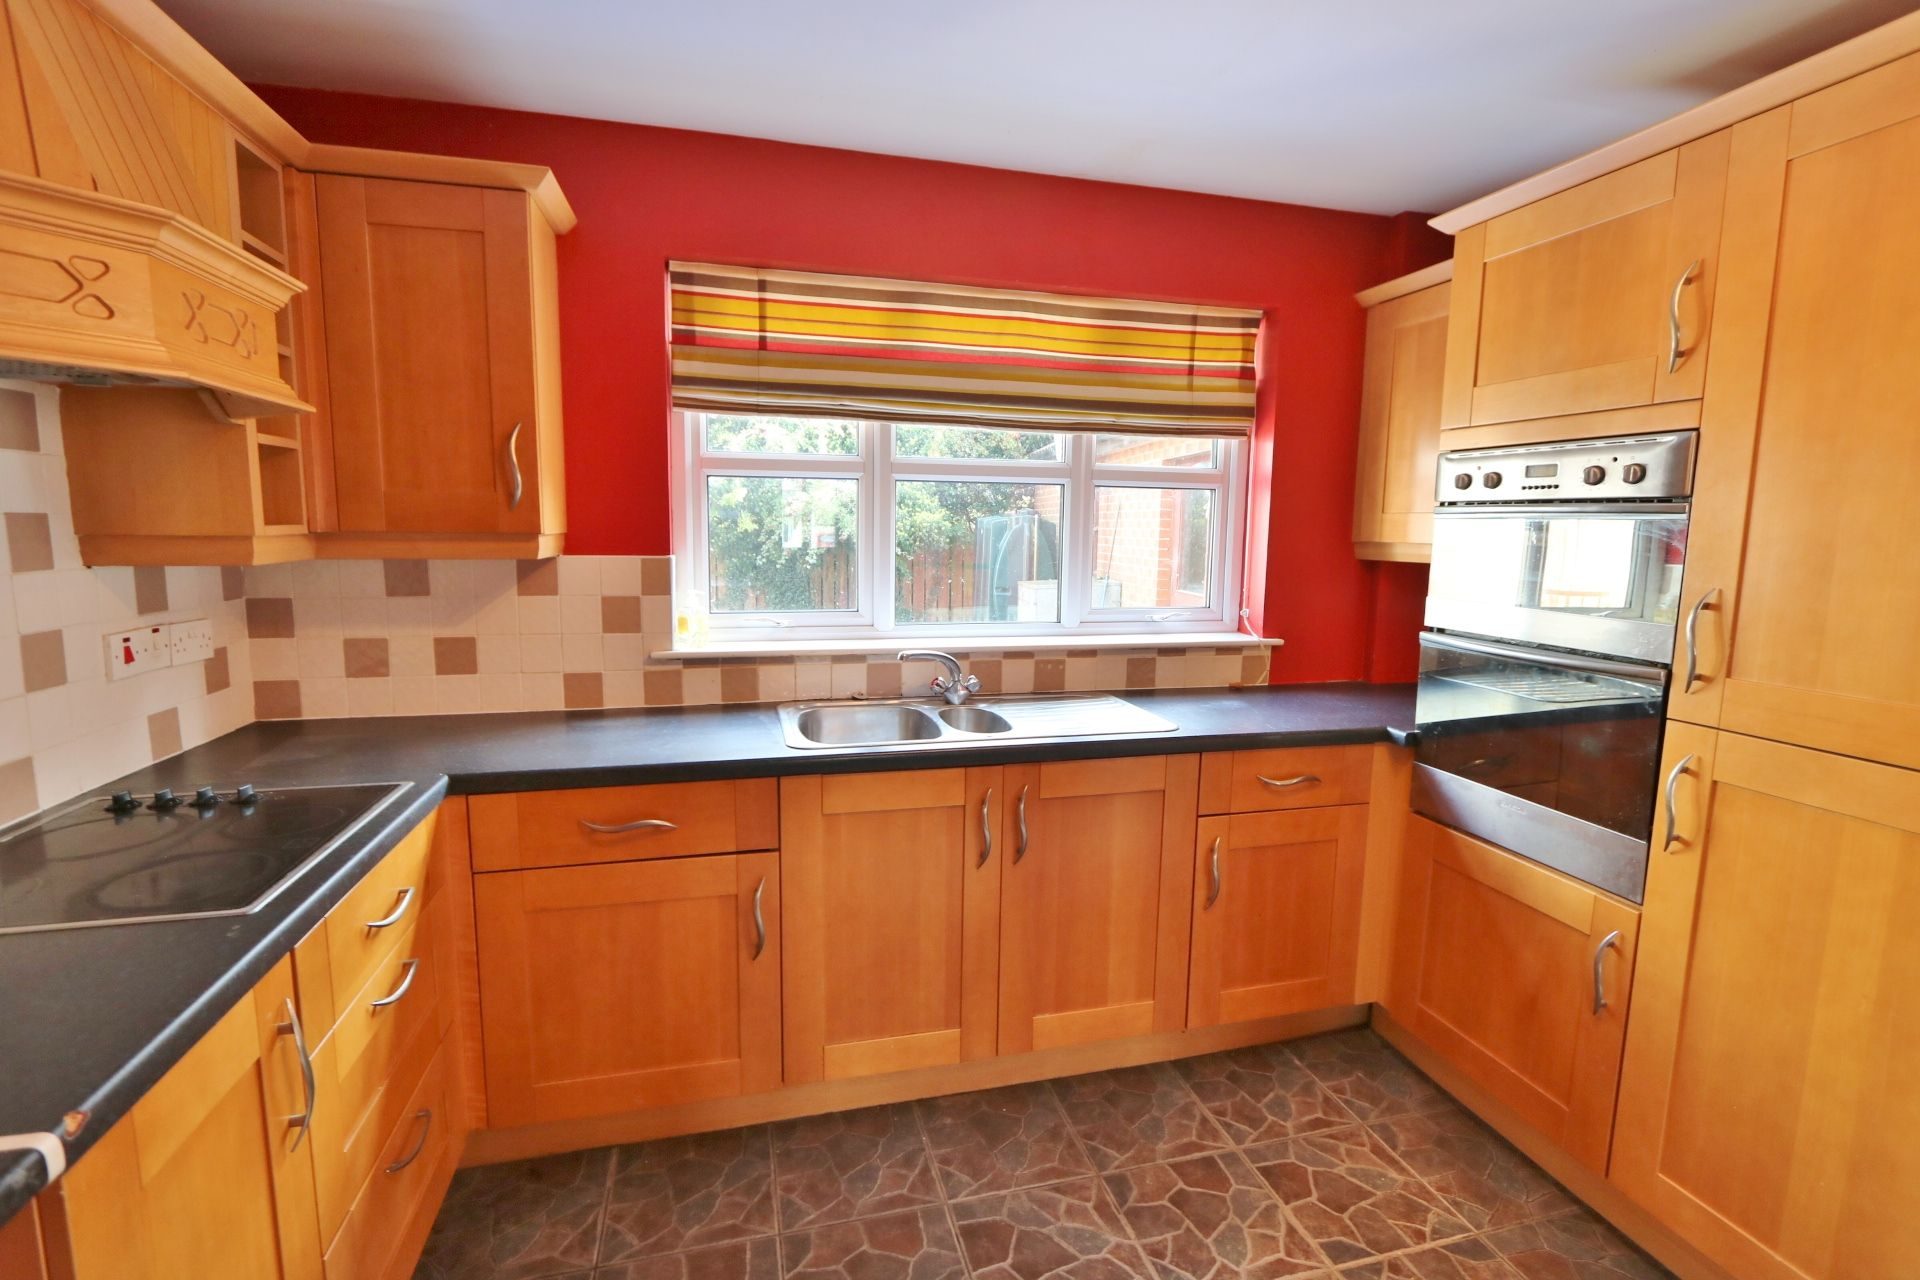 4 bedroom semi-detached house For Sale in Antrim - Photograph 7